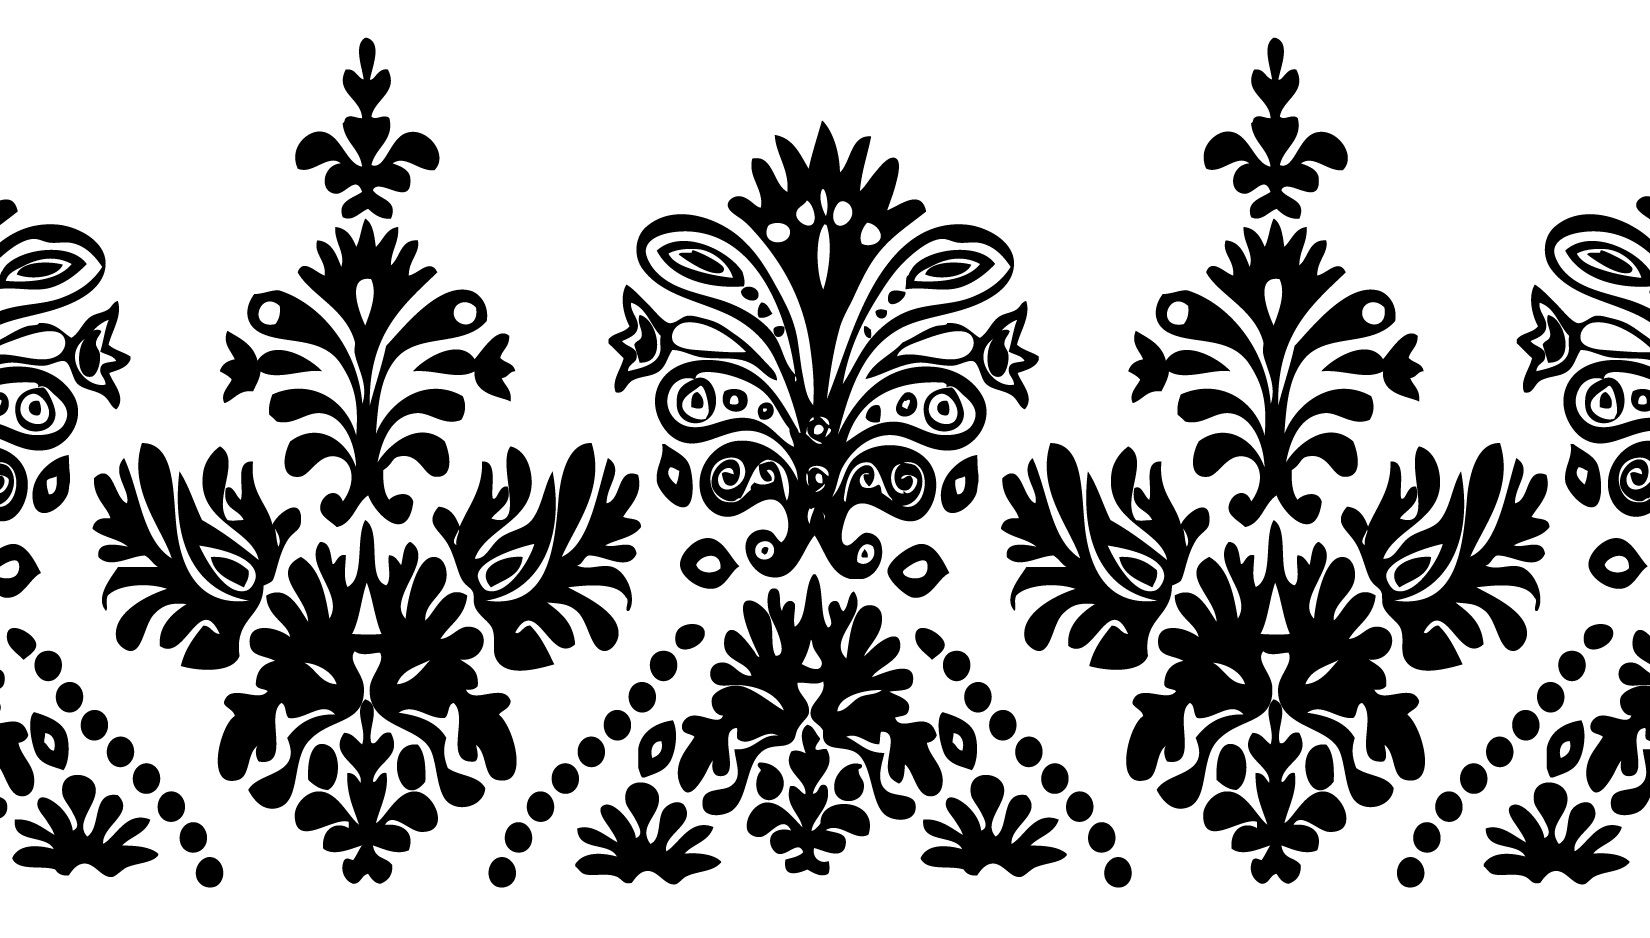 Free Printable Stencils For Painting | Stencils Designs Free - Free Printable Stencil Designs